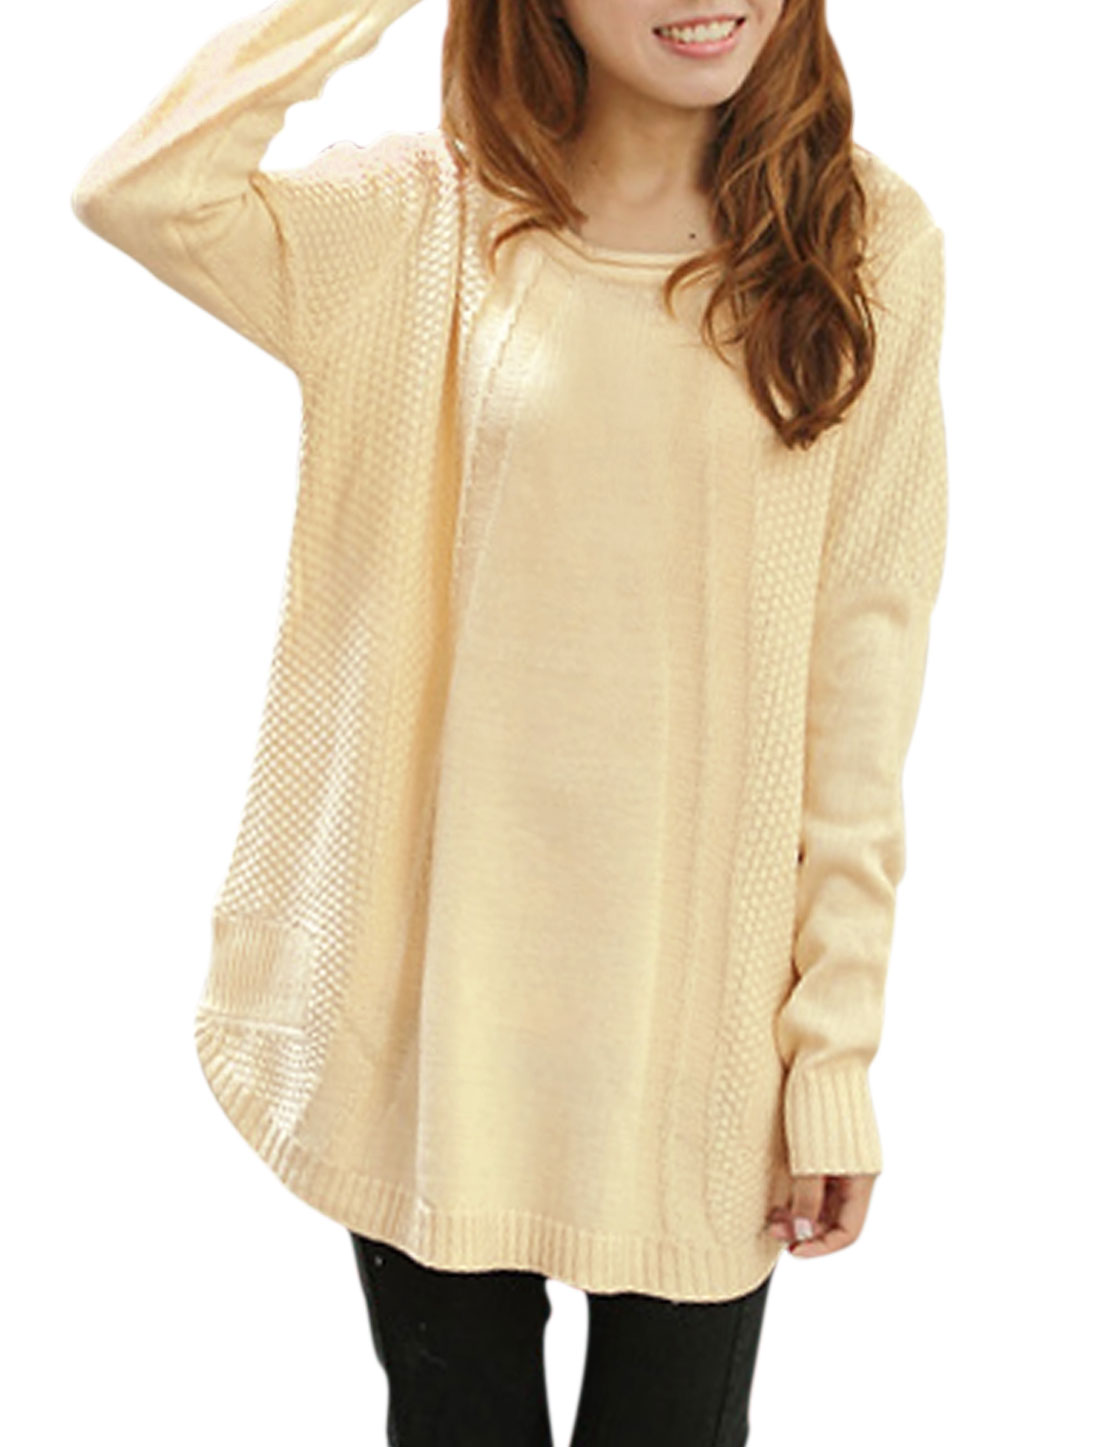 Lady Round Neck Long Batwing Sleeve Knitted Sweater Beige XS